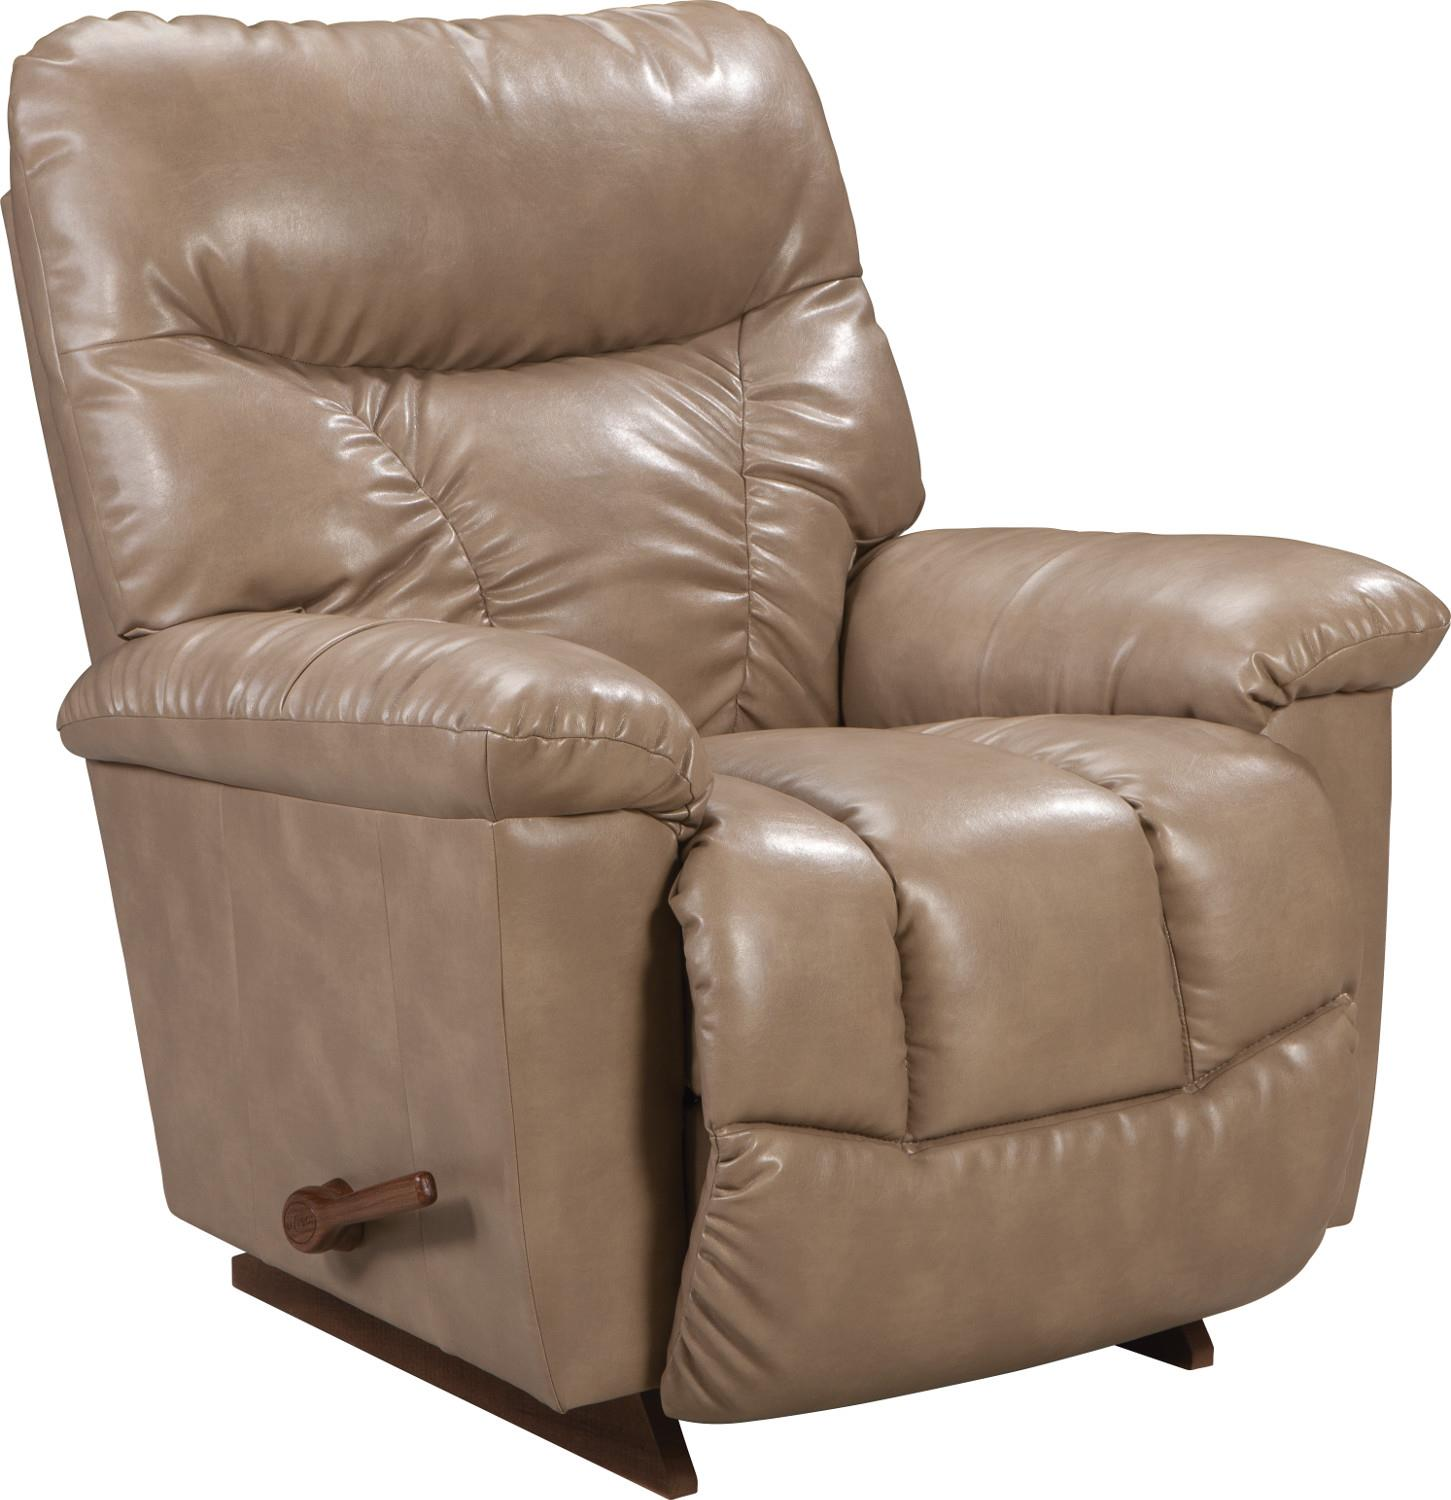 logan recliner - Lazy Boy Rocker Recliner  sc 1 th 228 & Lazy Boy Rocker Recliner. Lazy. Lazy Boy Recliner Reviews Uk Lazy ... islam-shia.org